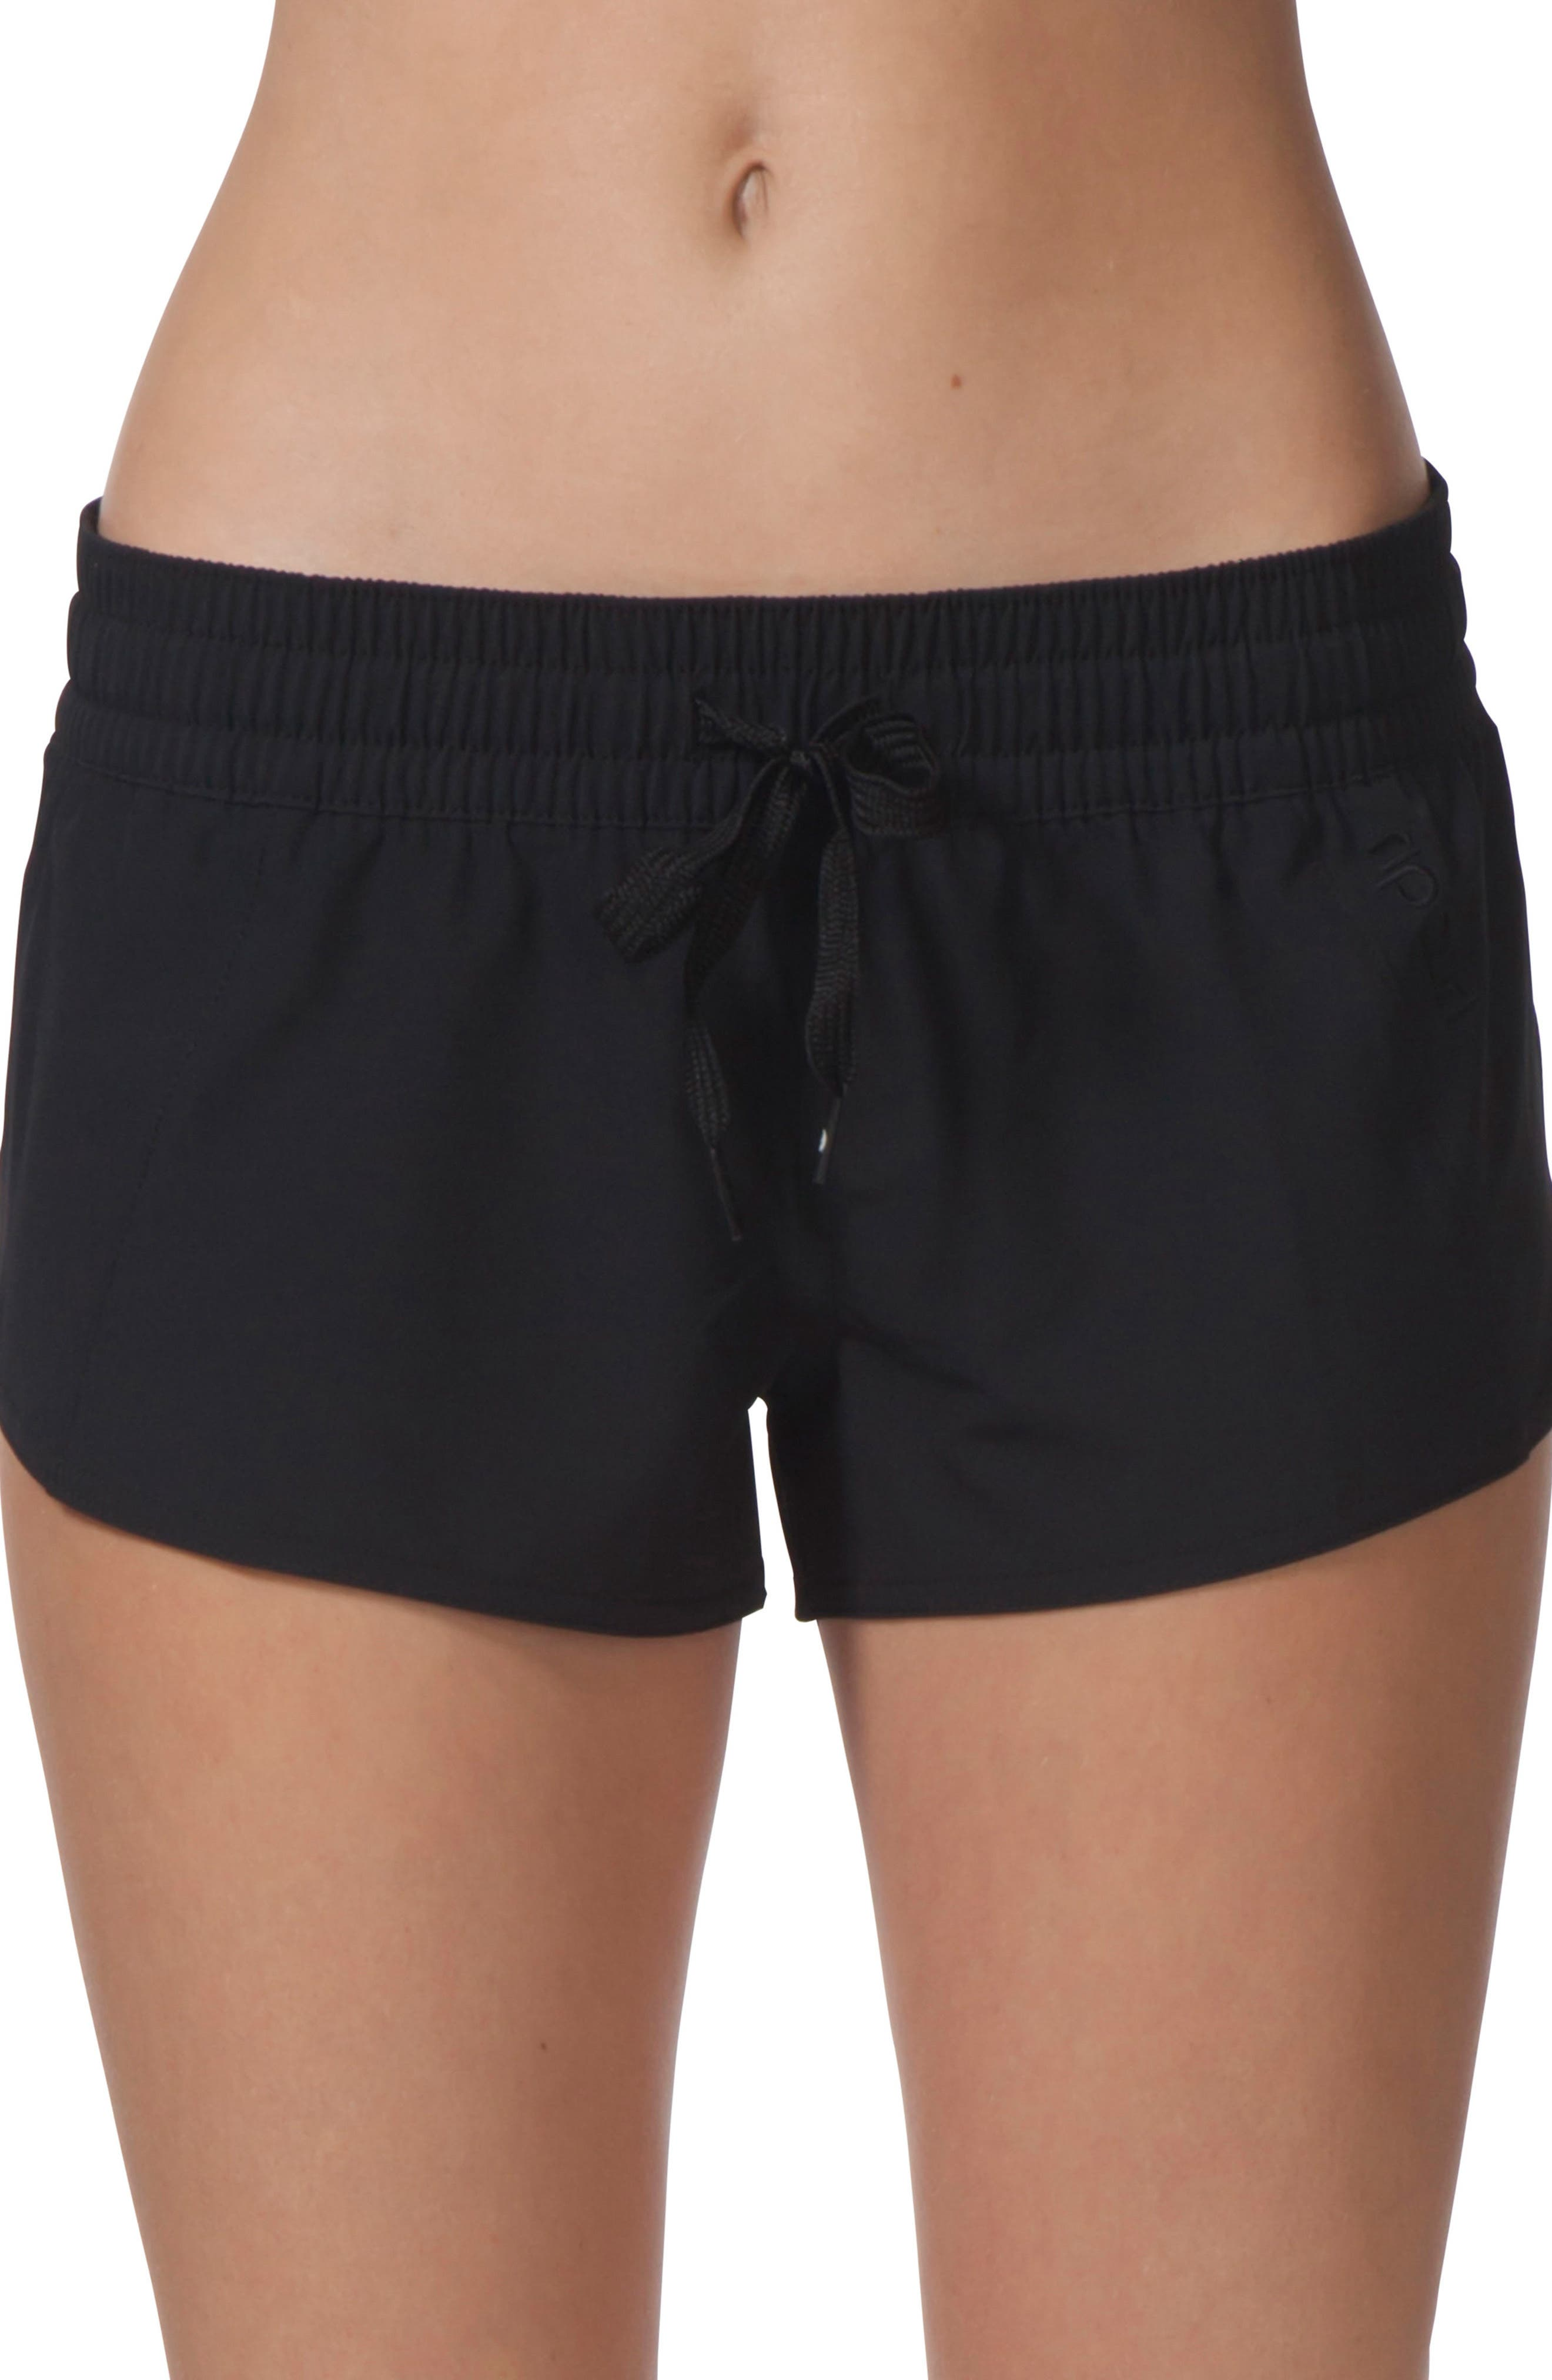 Classic Surf 2 Boardie Shorts,                         Main,                         color, BLACK